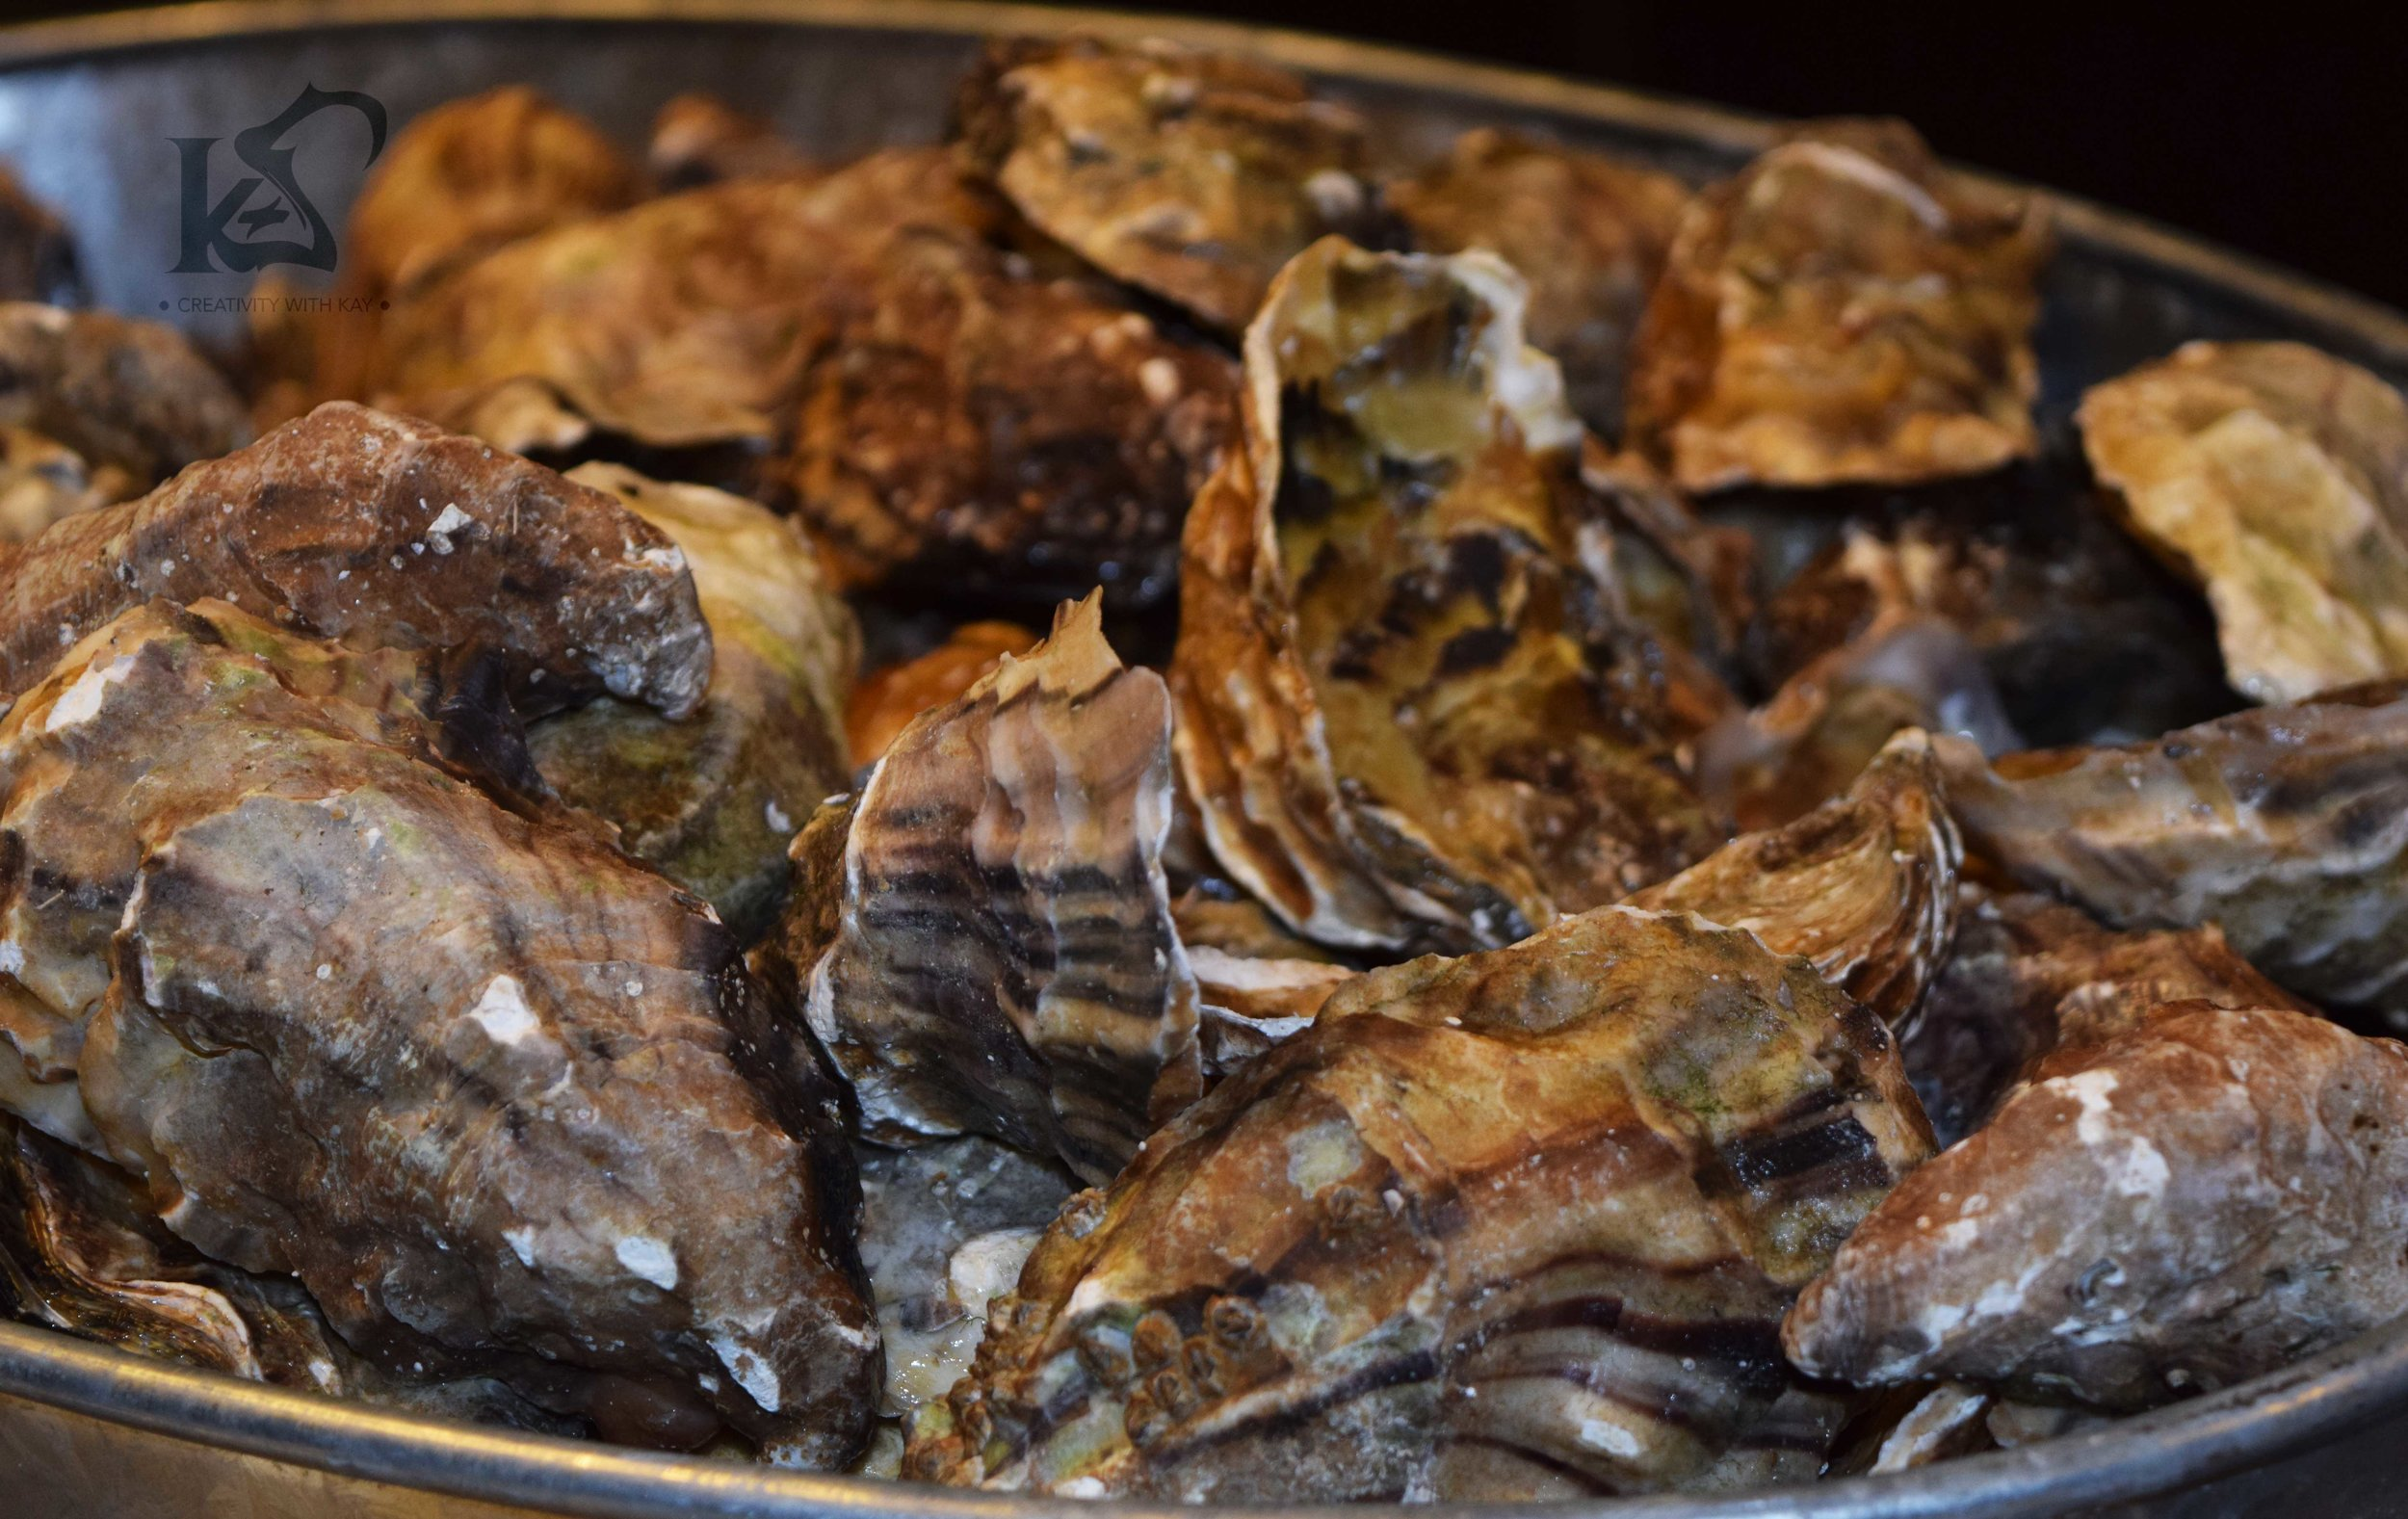 Fresh Oysters as Appetizers